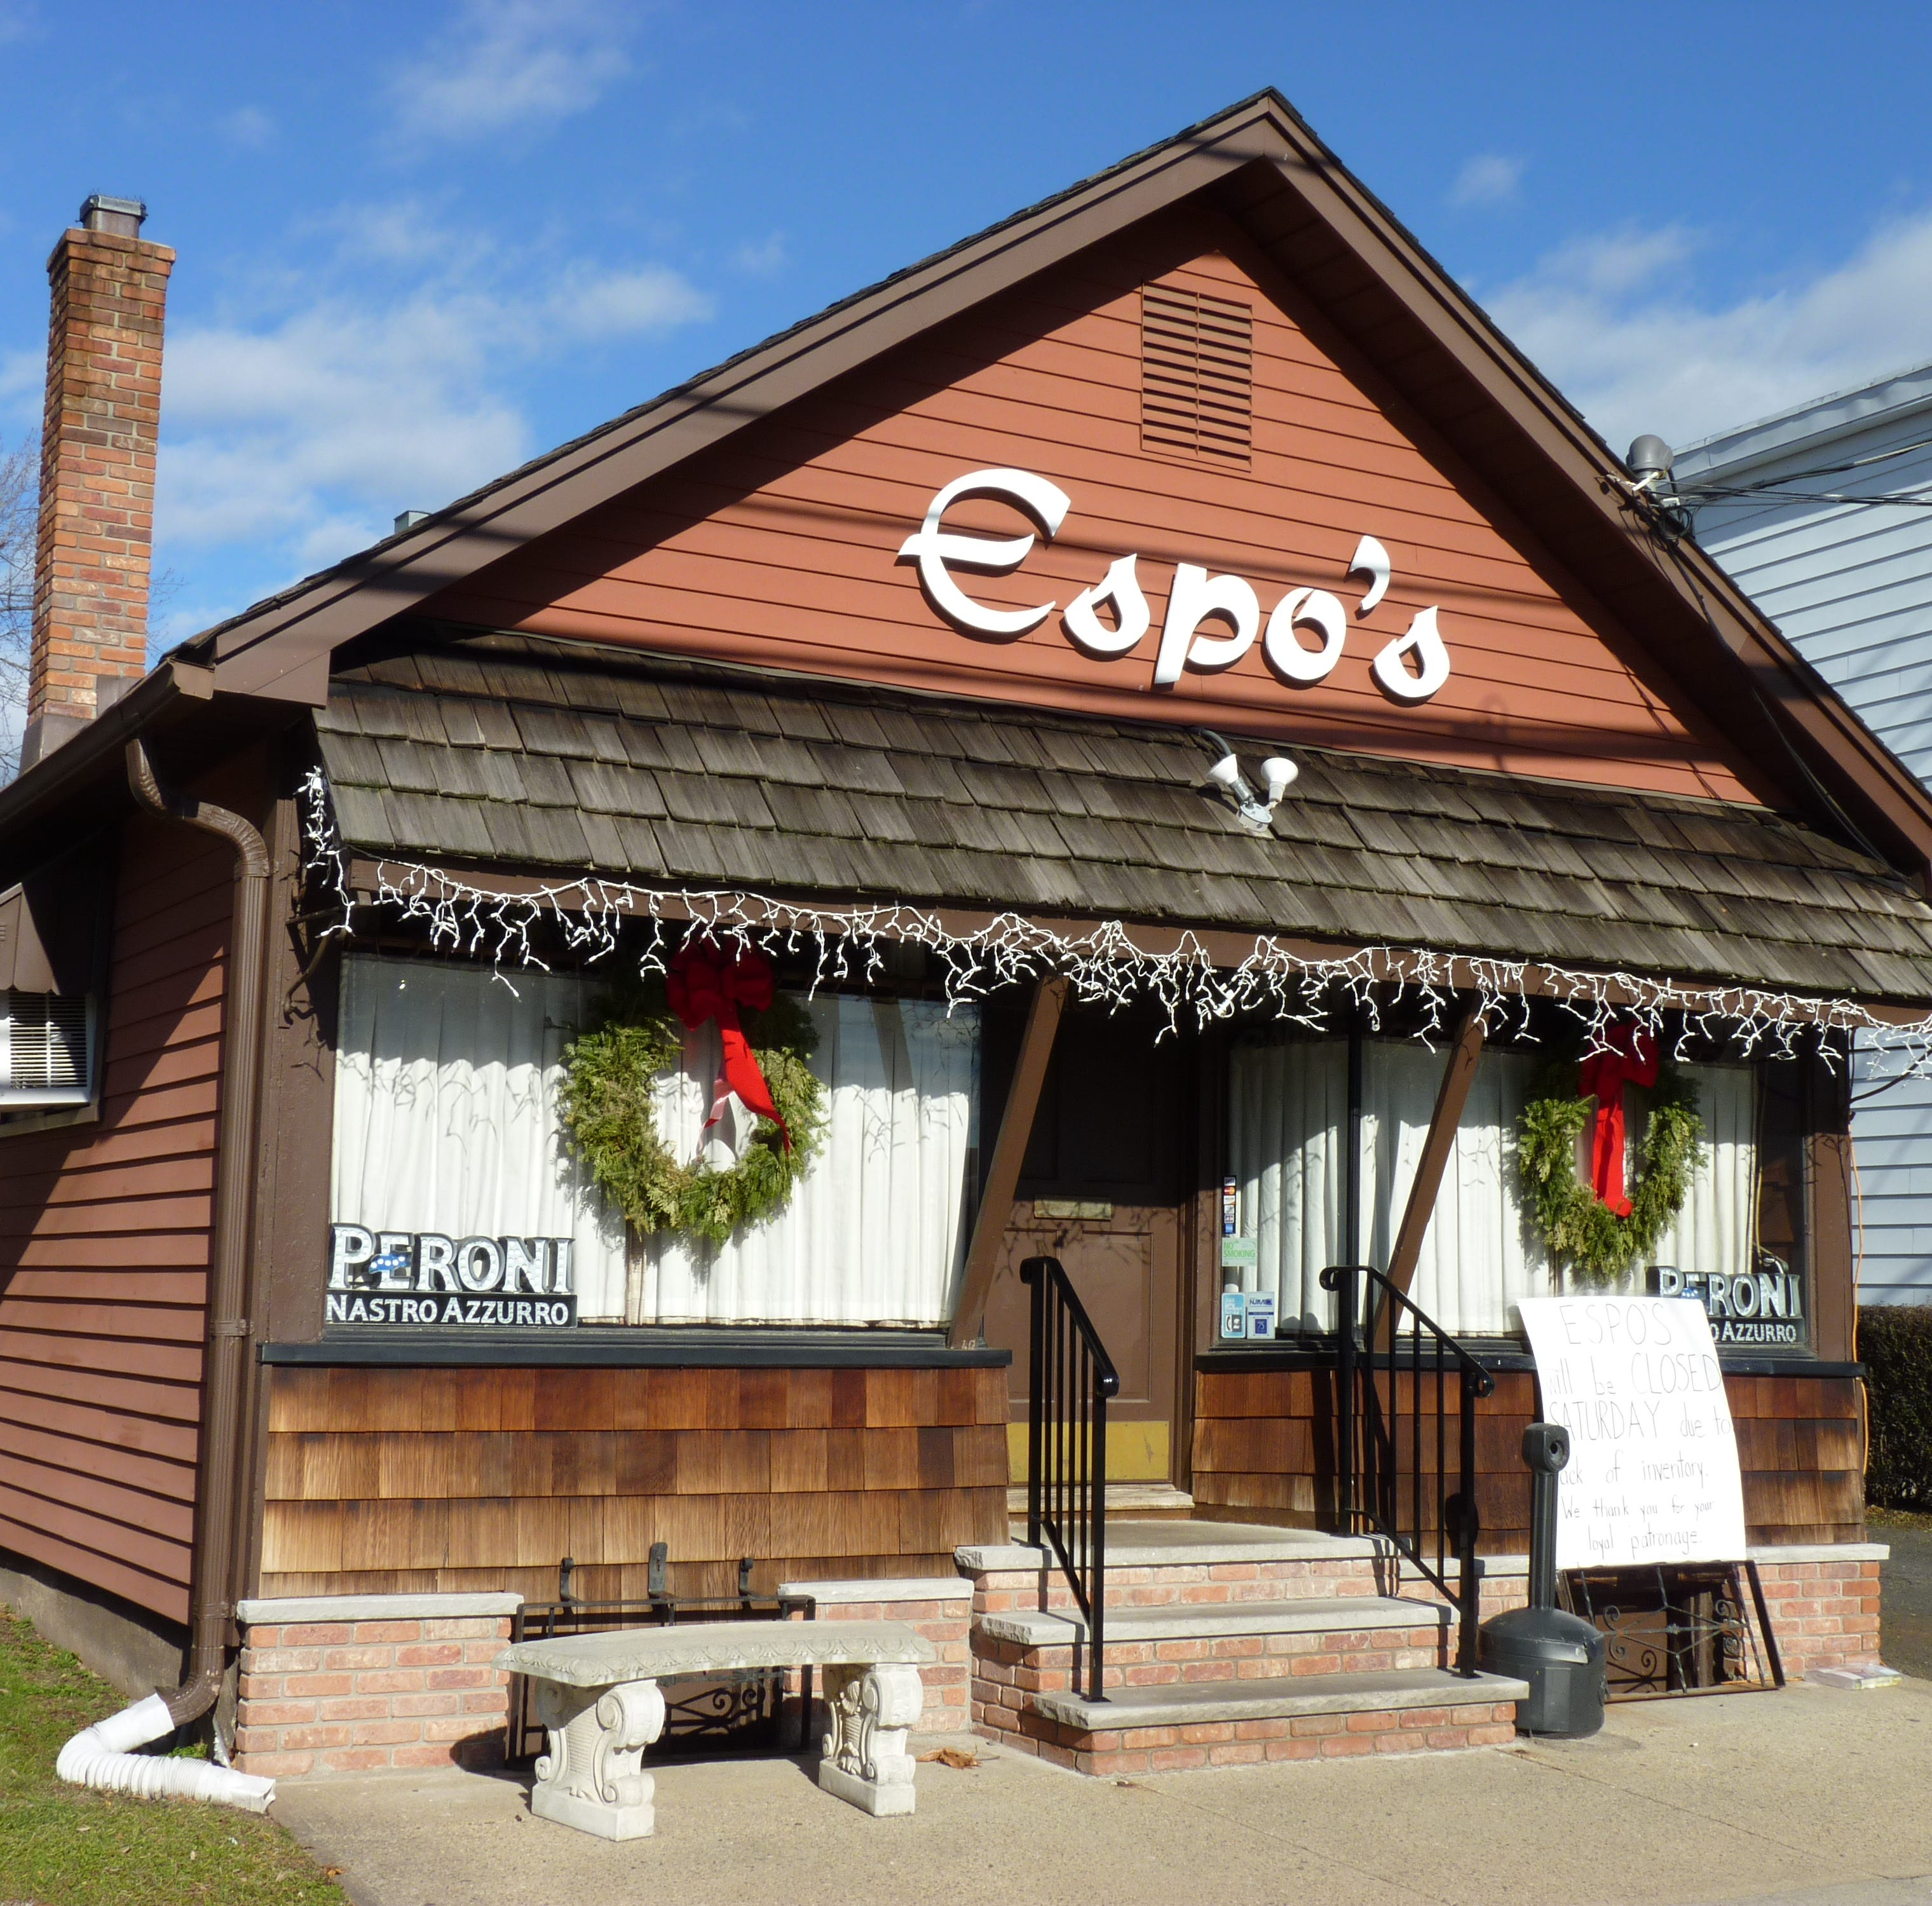 Espo's Italian restaurant in Raritan to reopen